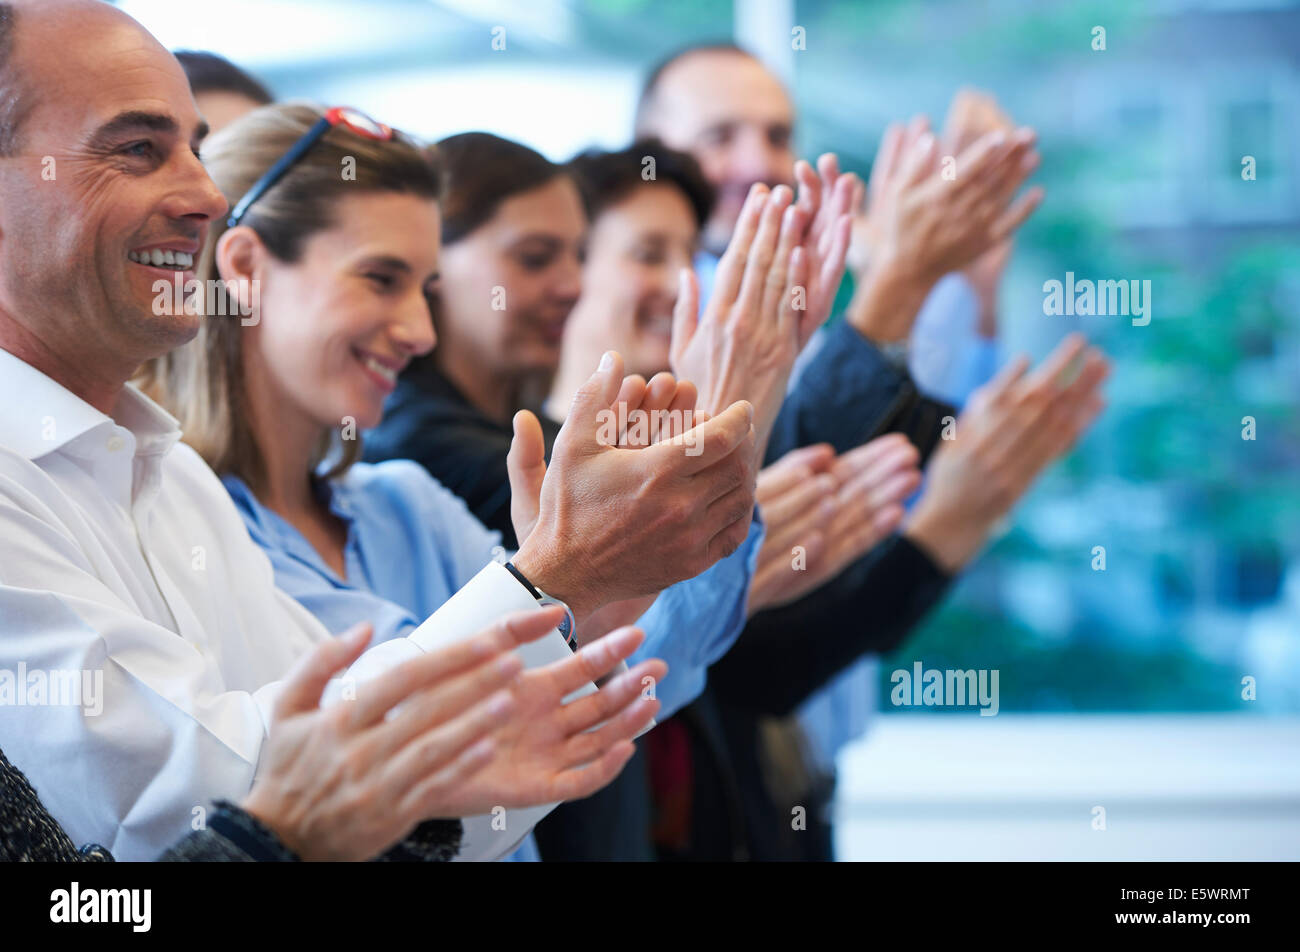 Group of people clapping - Stock Image